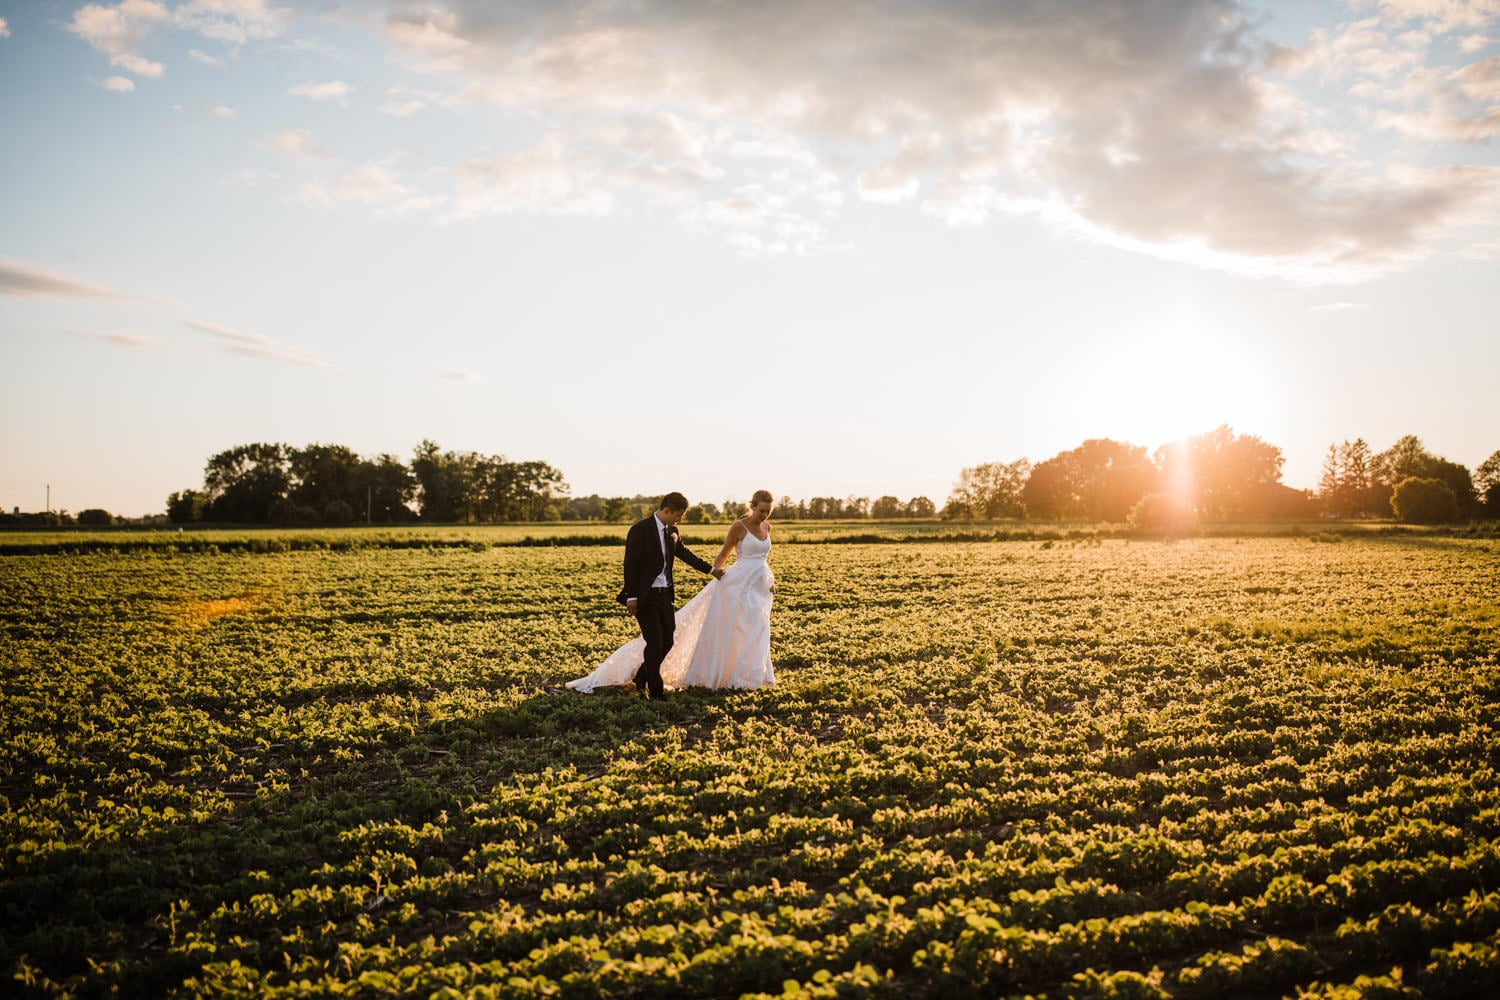 bride and groom walk through a field at sunset - ottawa backyard wedding - carley teresa photography